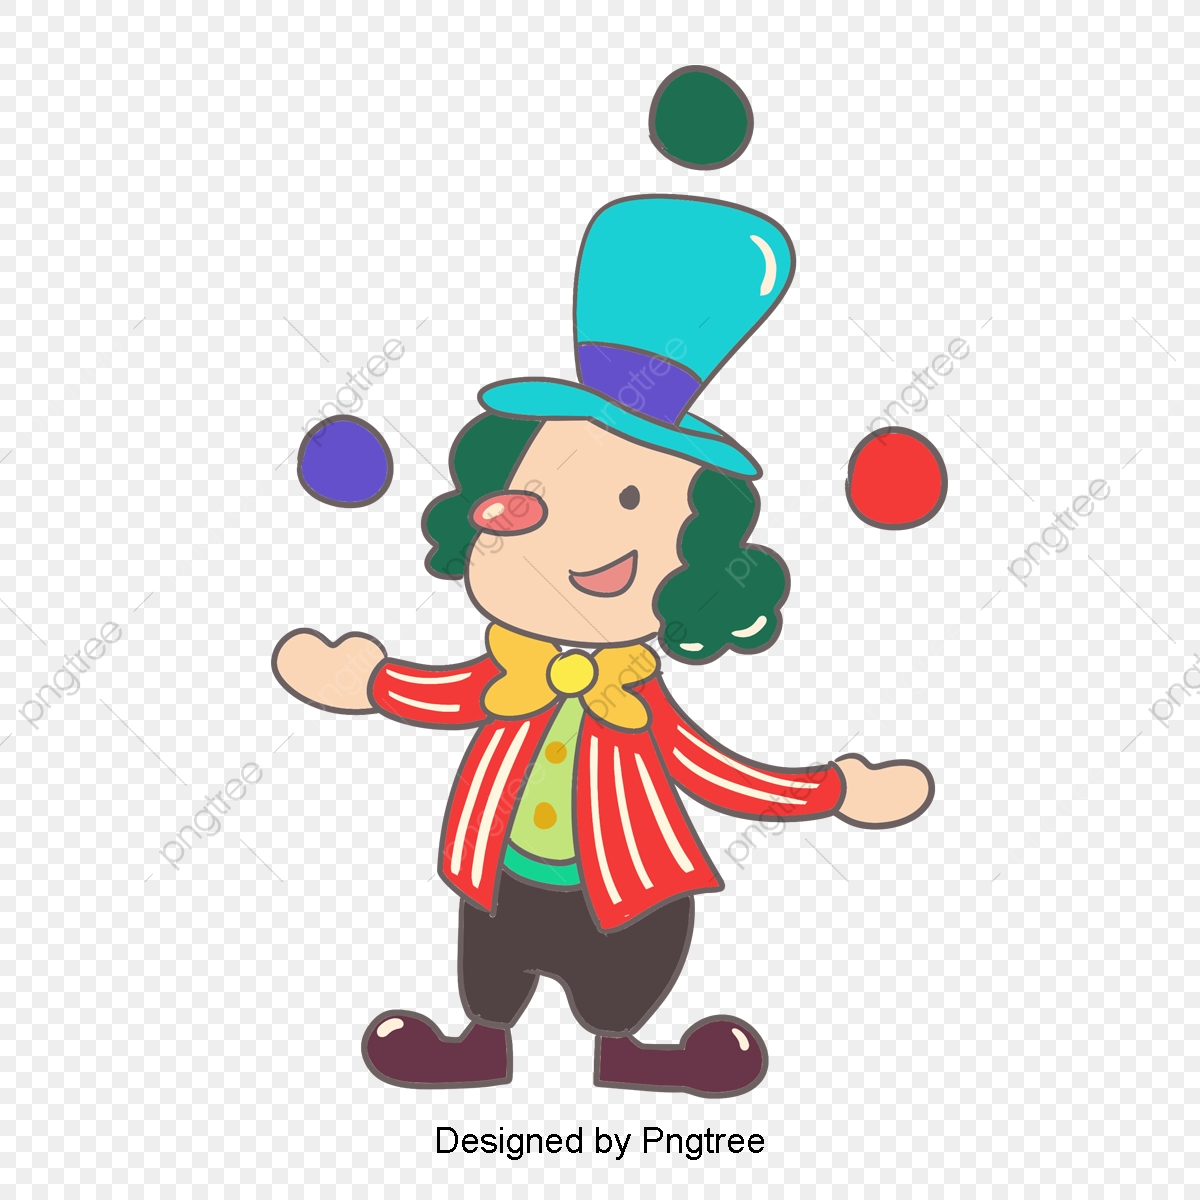 Classic Clown Vector Amazing Public Circus Show Man Juggling Balls Flat  Cartoon Illustration, Funny, Clown, Character PNG and Vector with  Transparent Background for Free Download